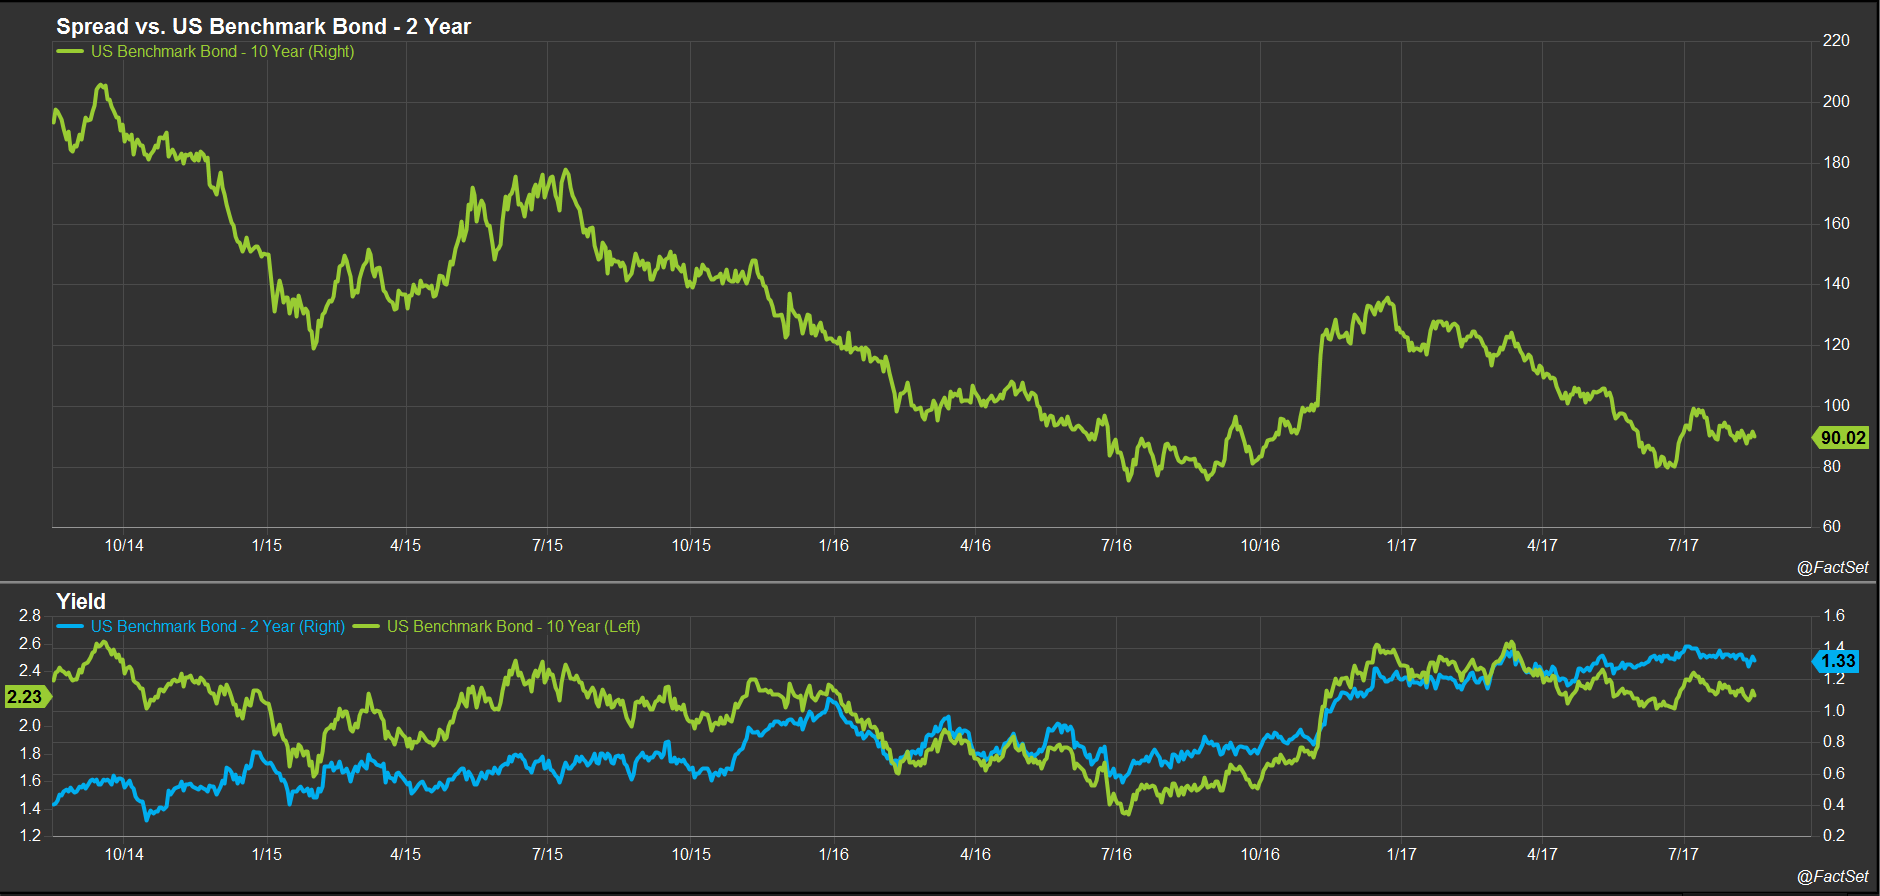 Yield Curve Spreads